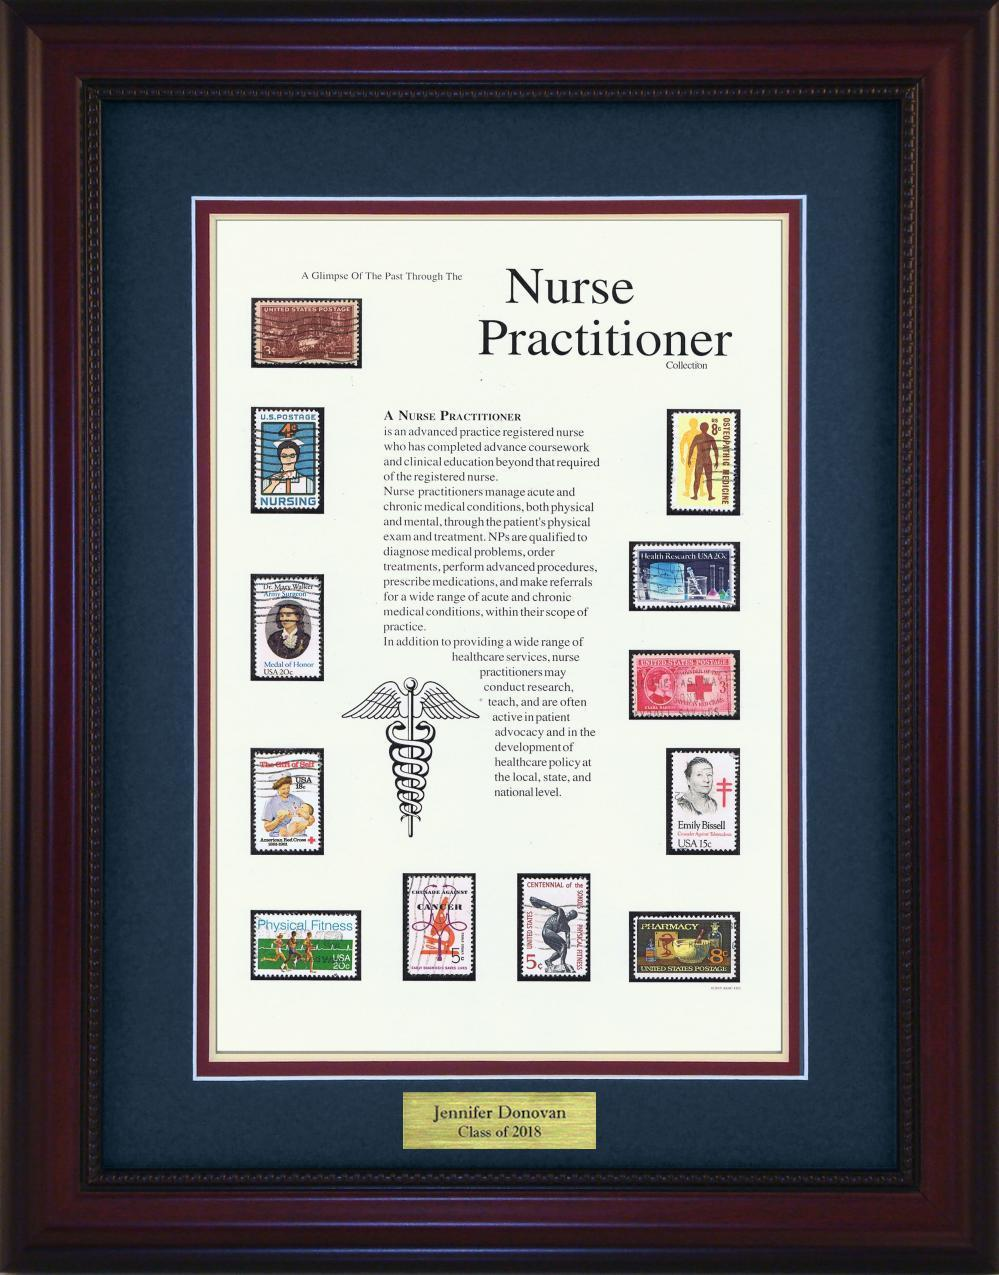 Nurse Practitioner - Personalized Unique Framed Gift